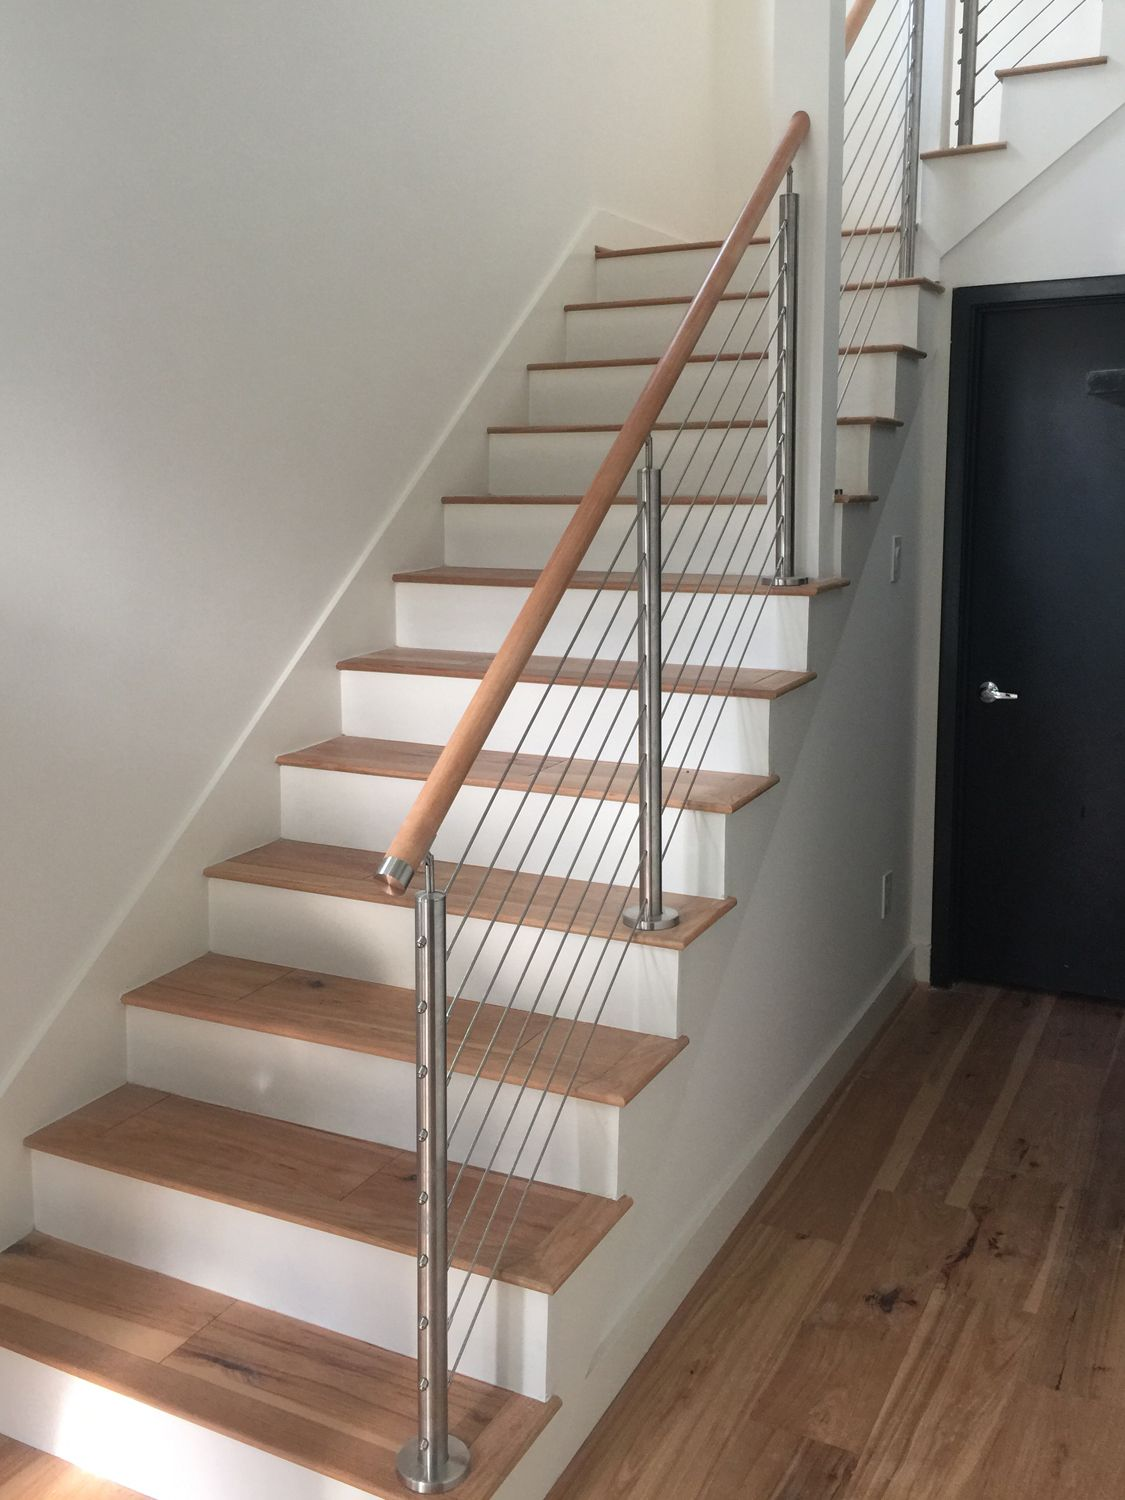 Our Stainless Steel And Cable Railing Brings A Simple Modern